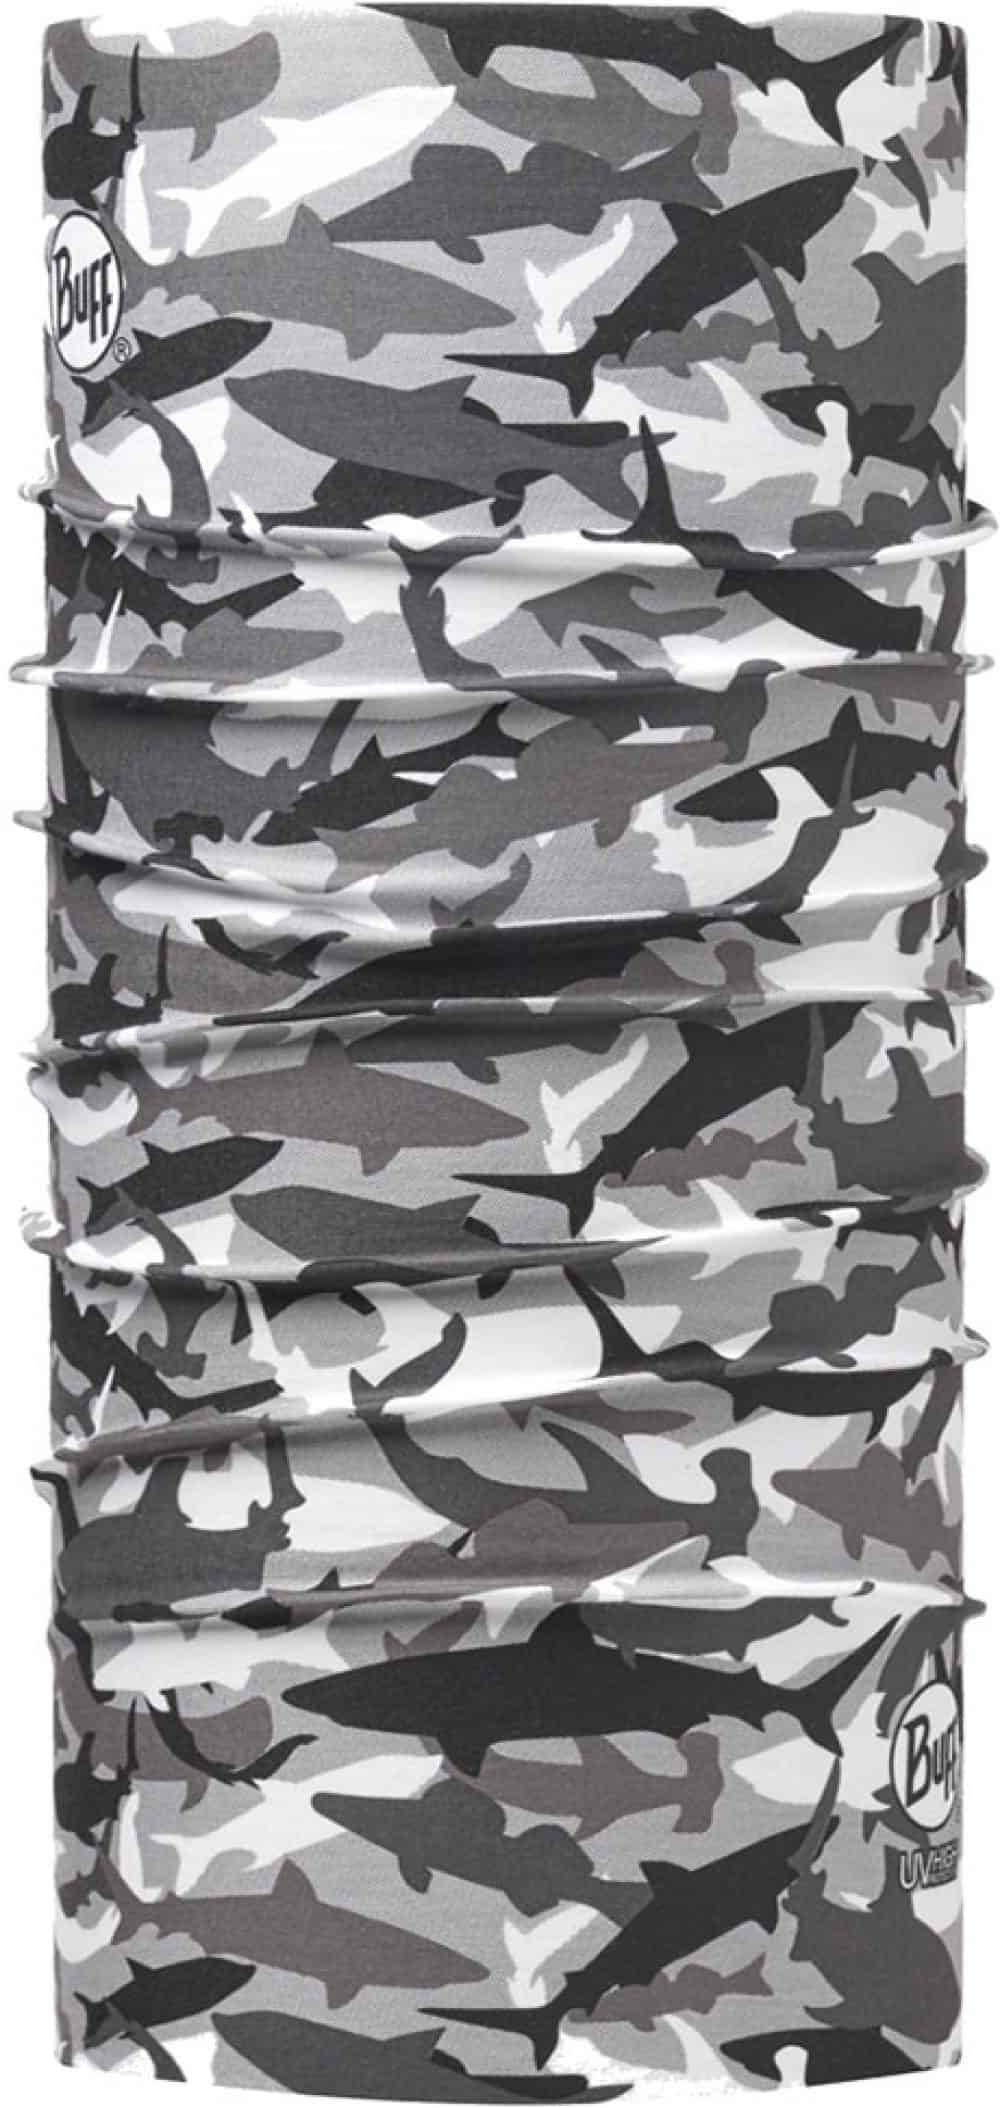 "Picture of the High UV Buff® design ""Shark Camo Grey"". A camouflage type design with shark silhouettes used like stencils. The colours used a white, grey, & black. It is a one sided printed design. The inside is white."